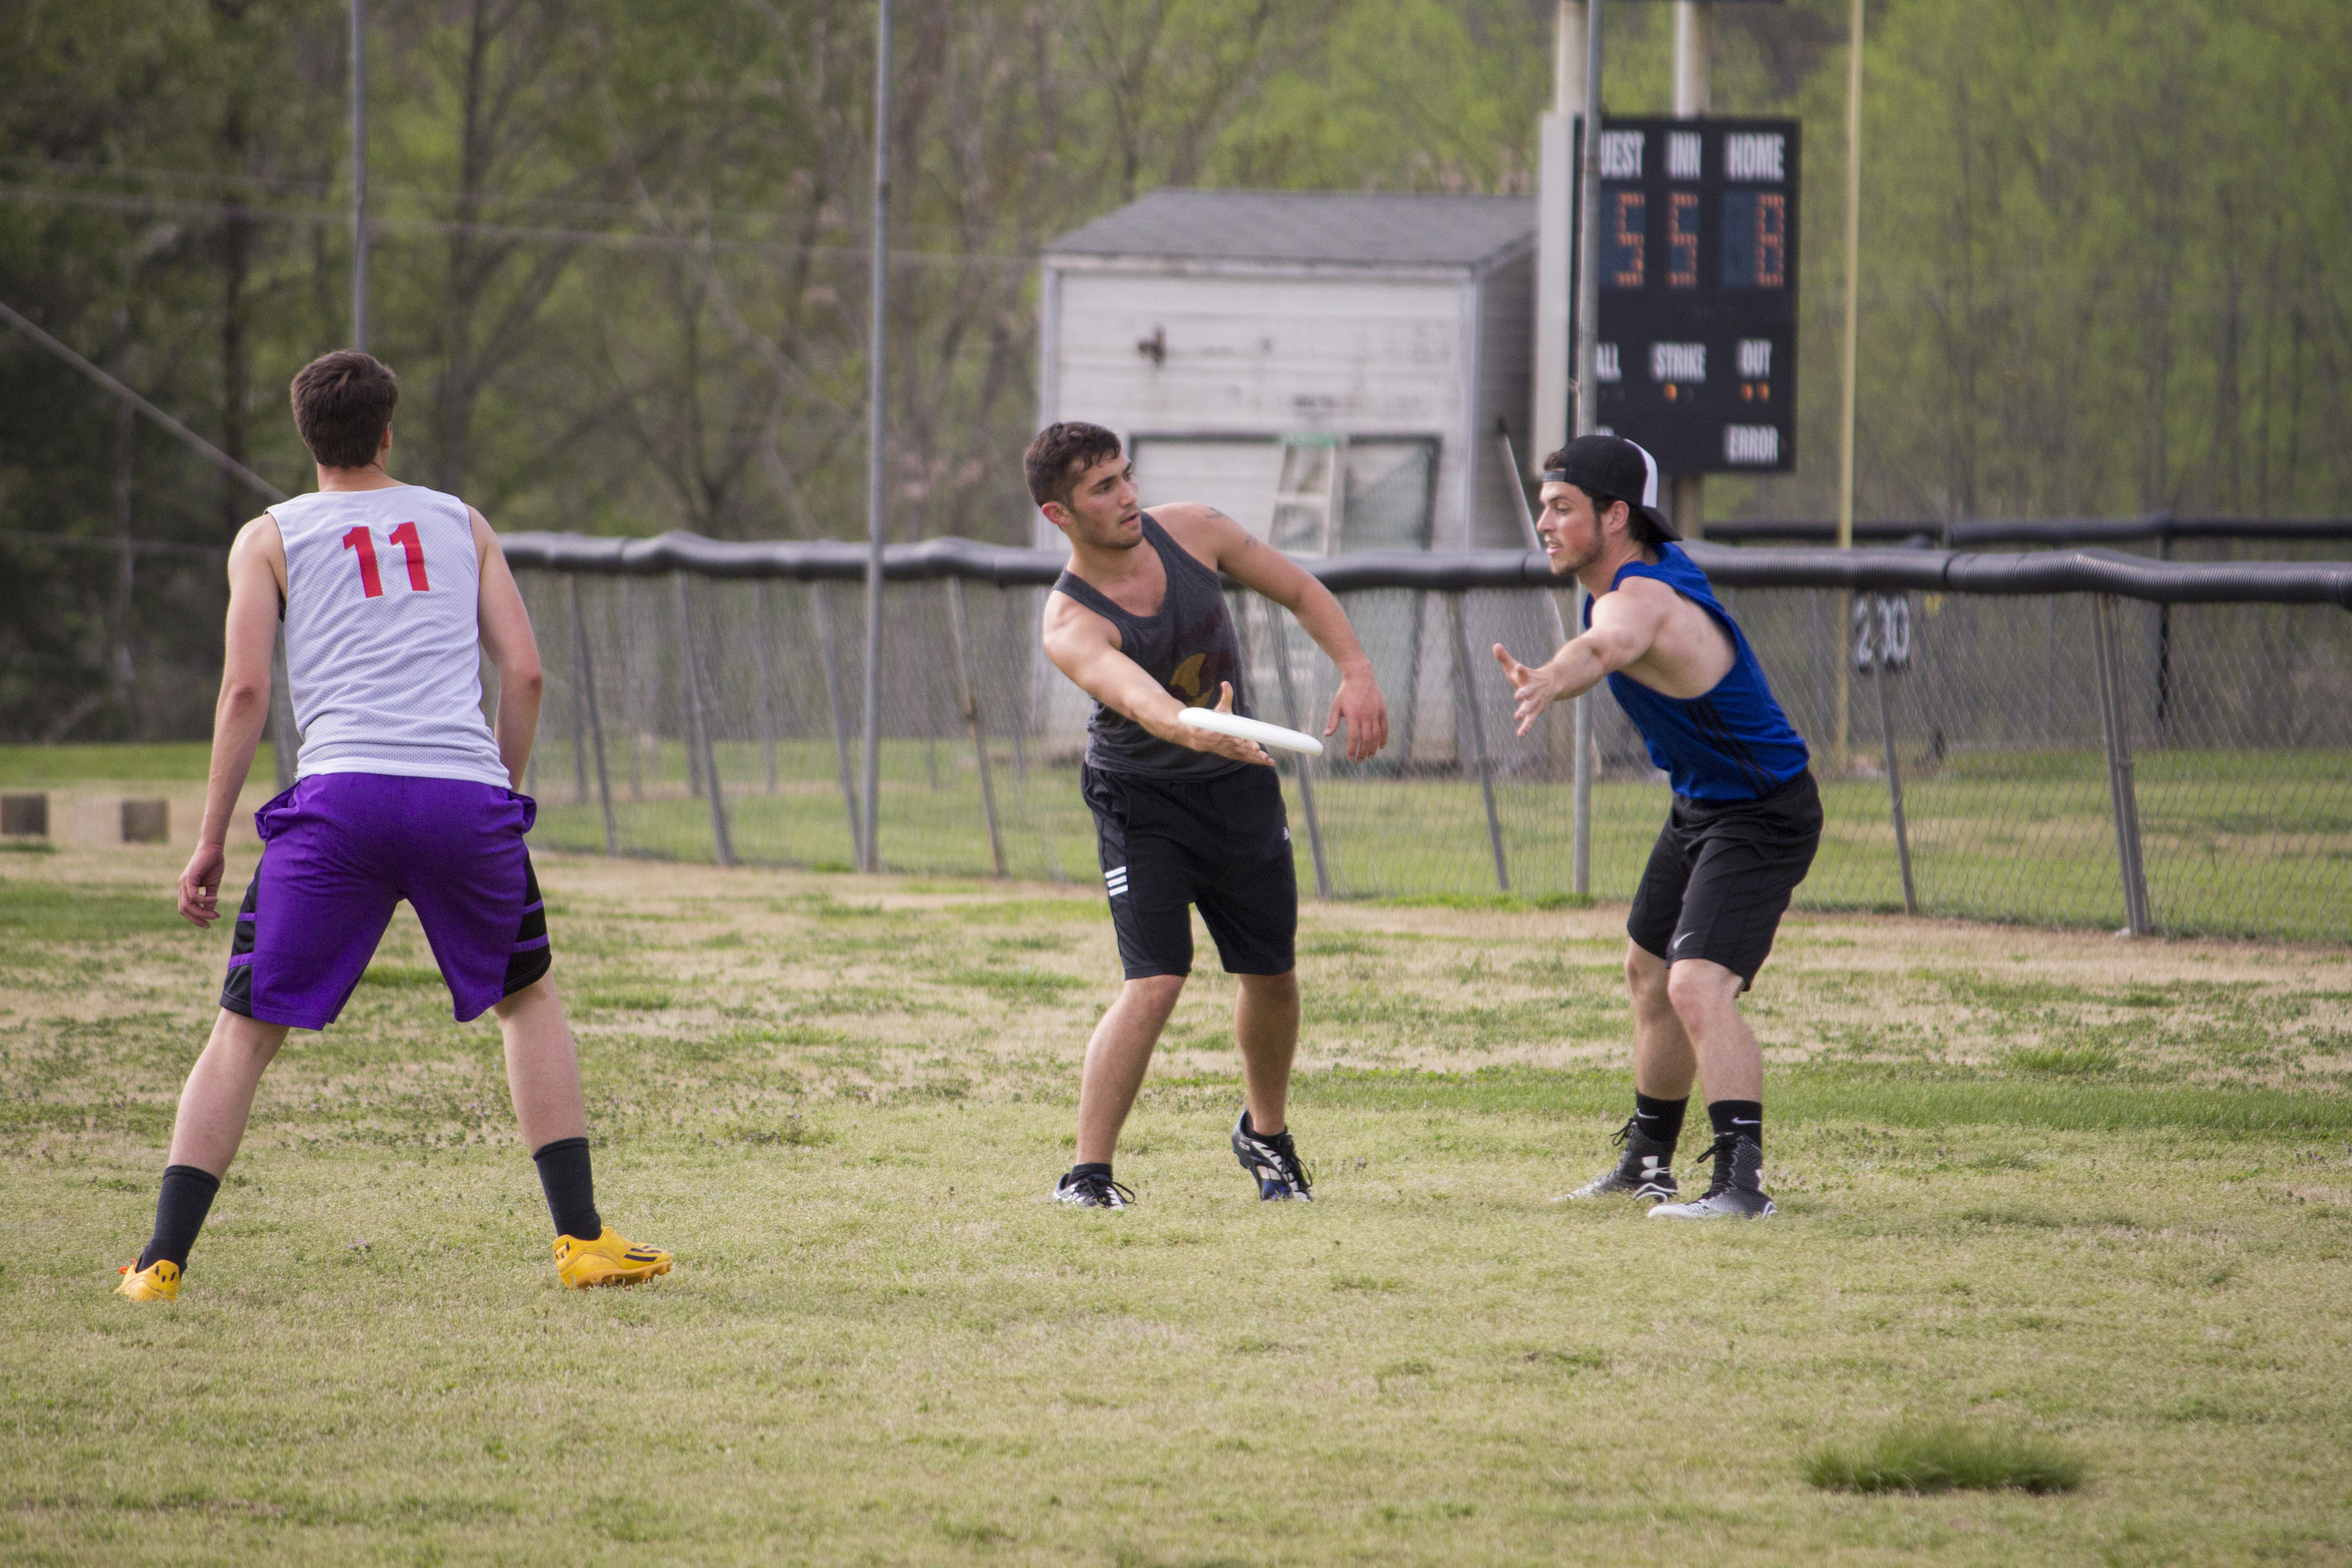 Josh Mckeown flicks the frisbee to the right side to score a point.